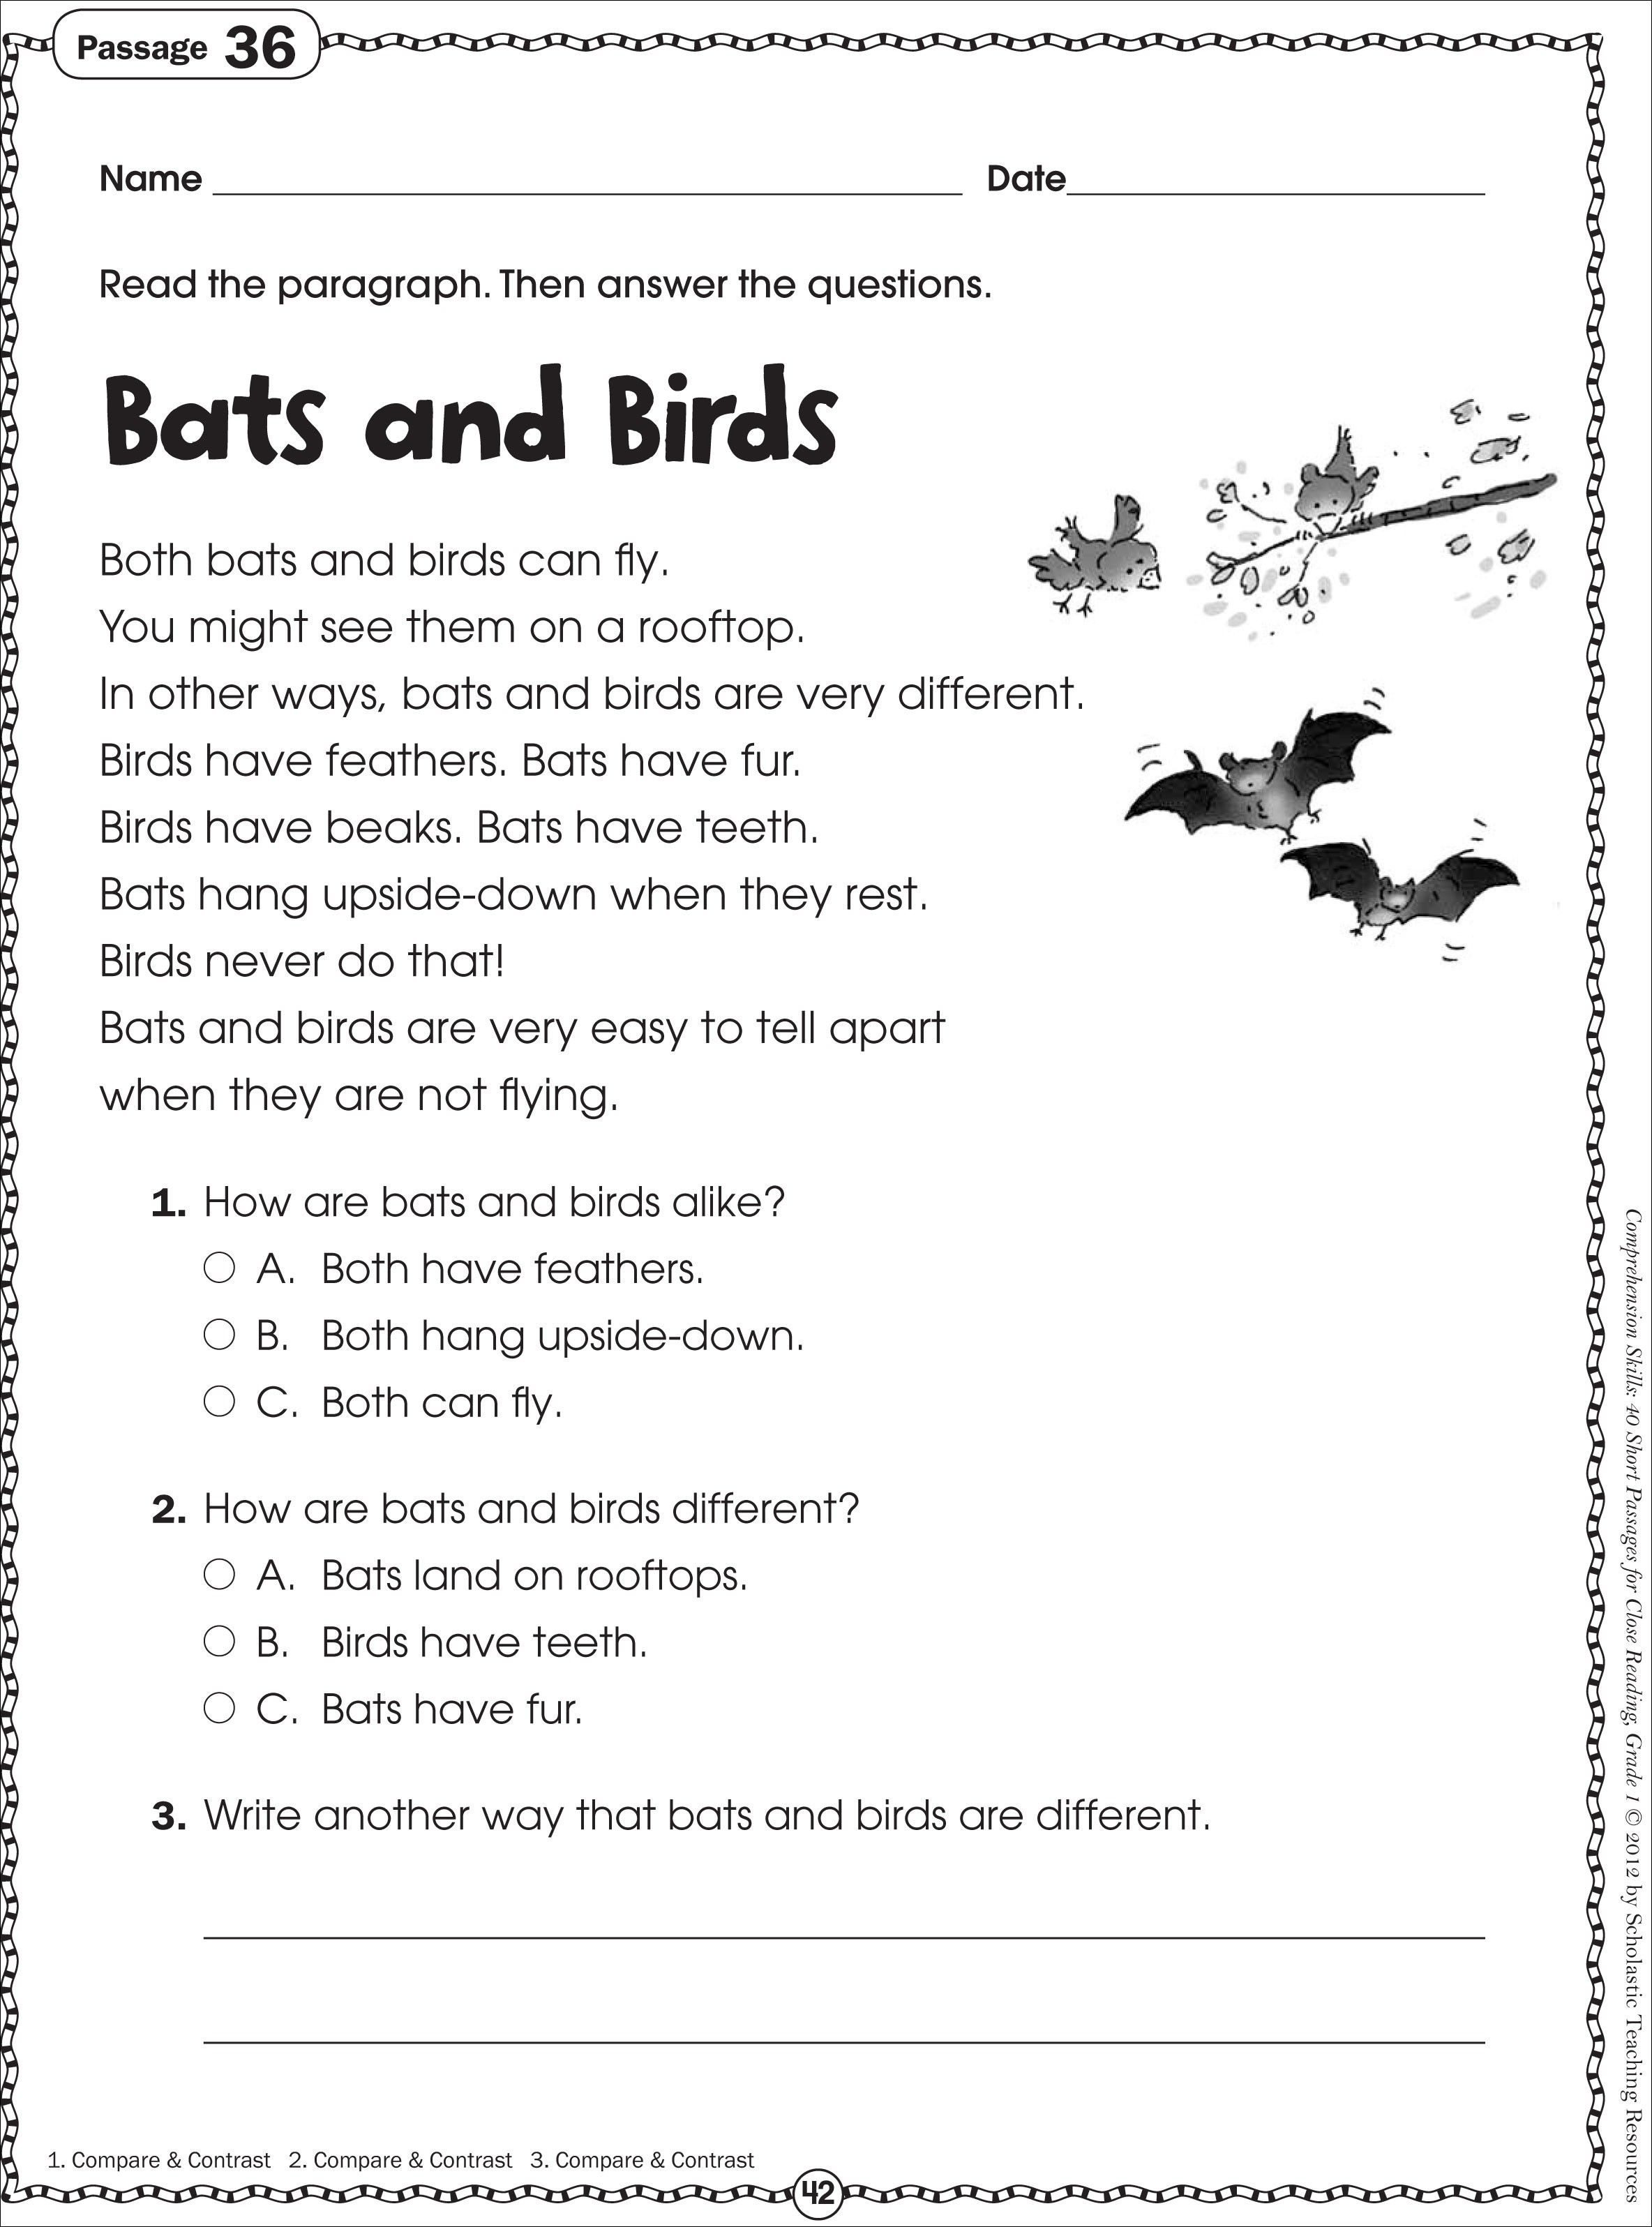 Free Printable Reading Comprehension Worksheets For Kindergarten - Free Printable Ela Worksheets